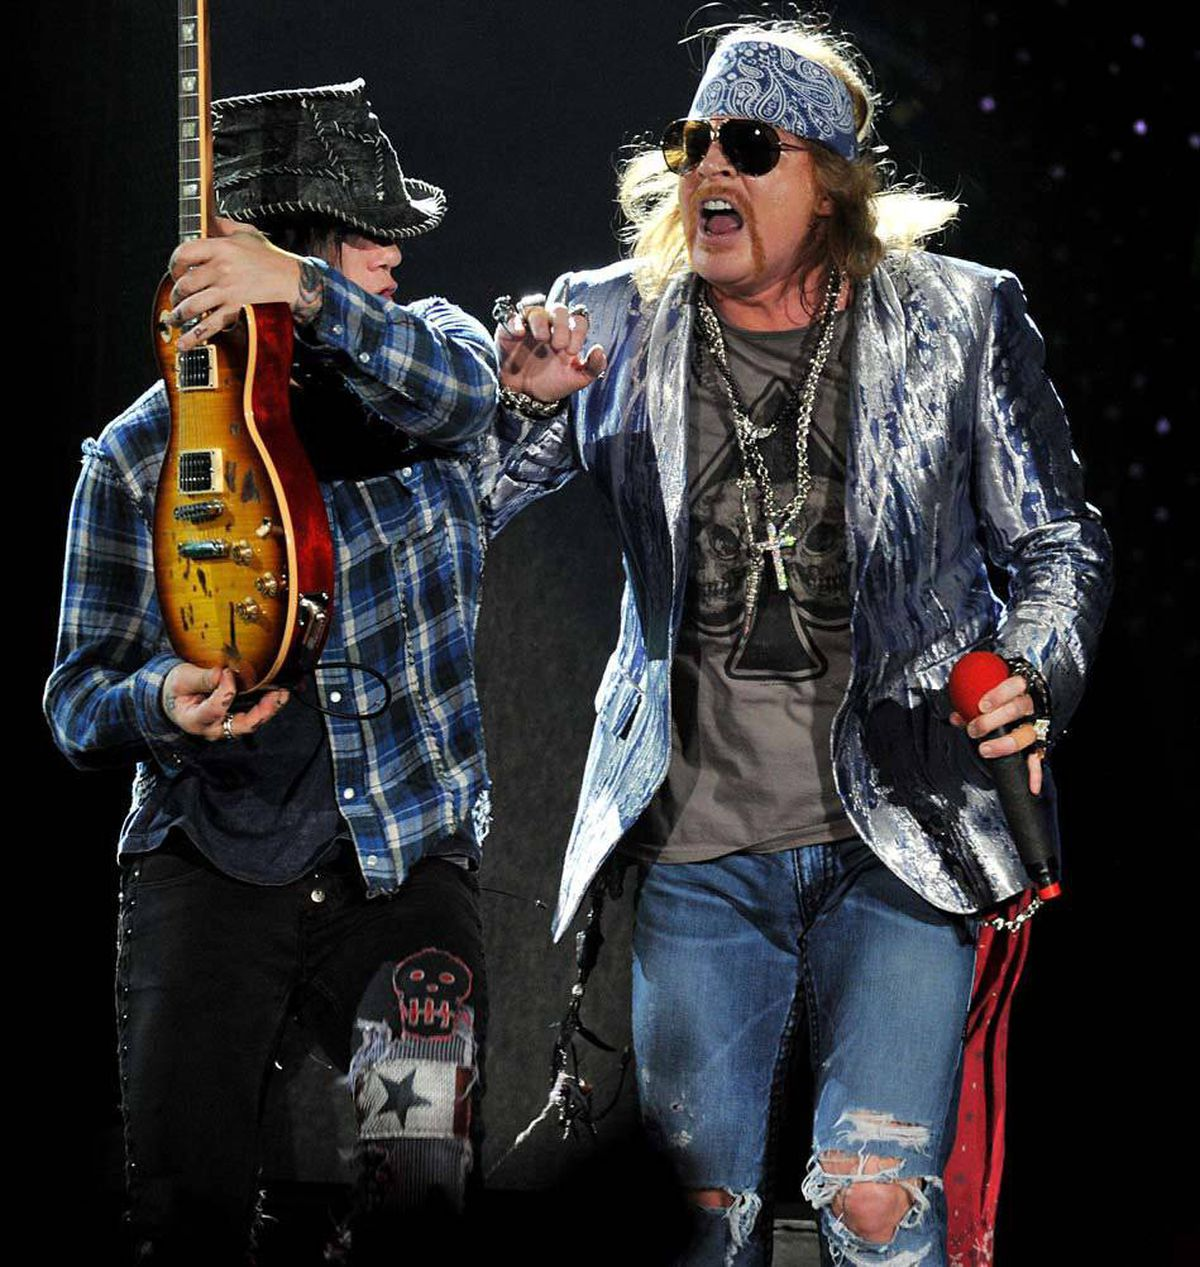 Guns N' Roses guitarist DJ Ashba, left, and singer Axl Rose perform at London's O2 Arena in 2010. The original band broke up in 1996 but Axl Rose still performs under its name.